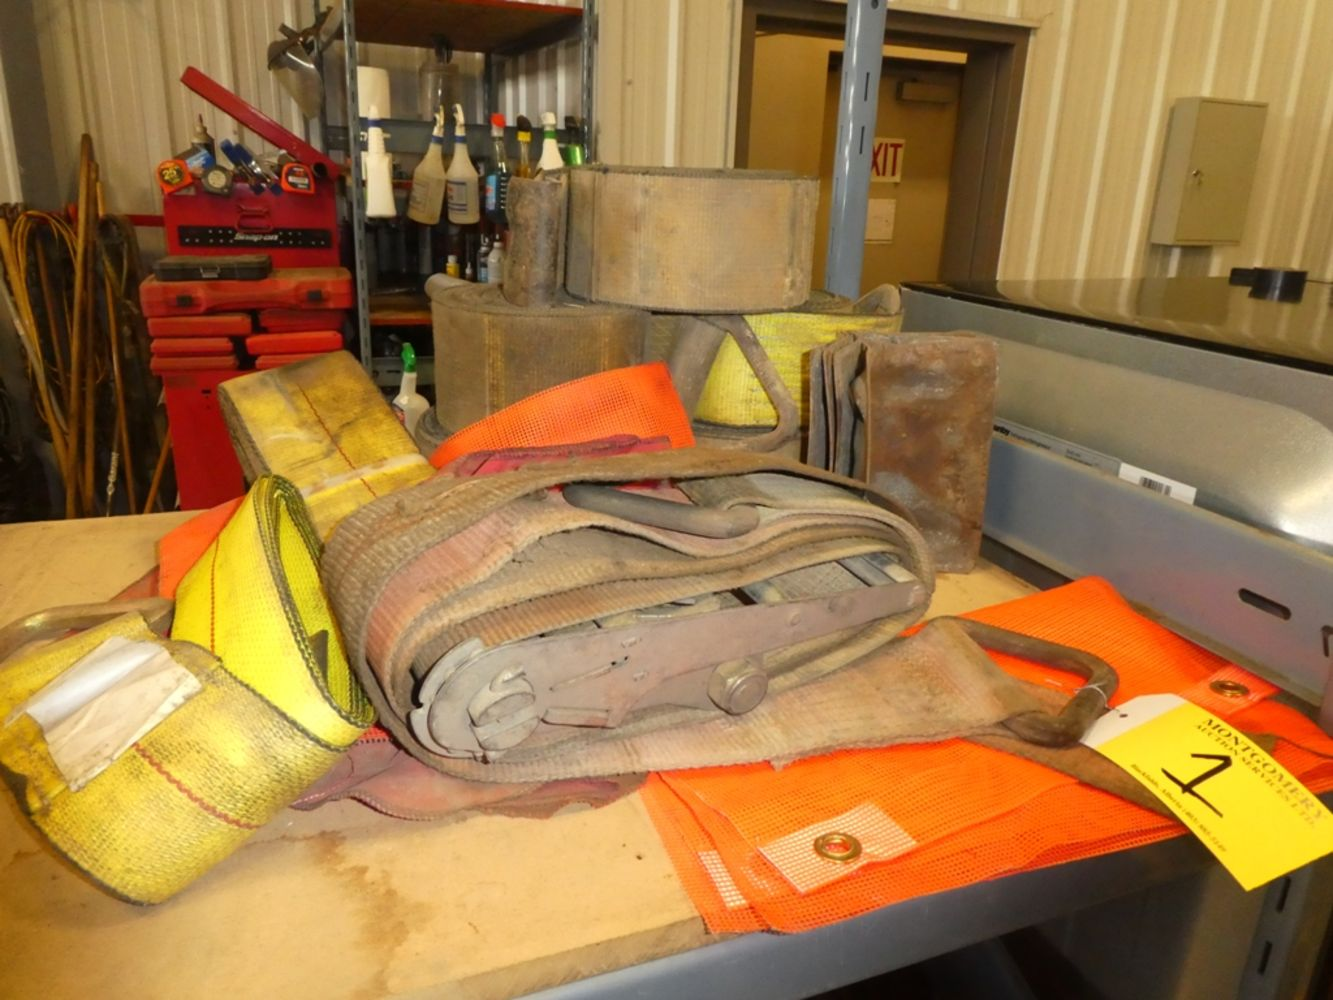 OILFIELD & SHOP TOOLS & EQUIPMENT, STORAGE CONTAINERS - Harpoon Energy